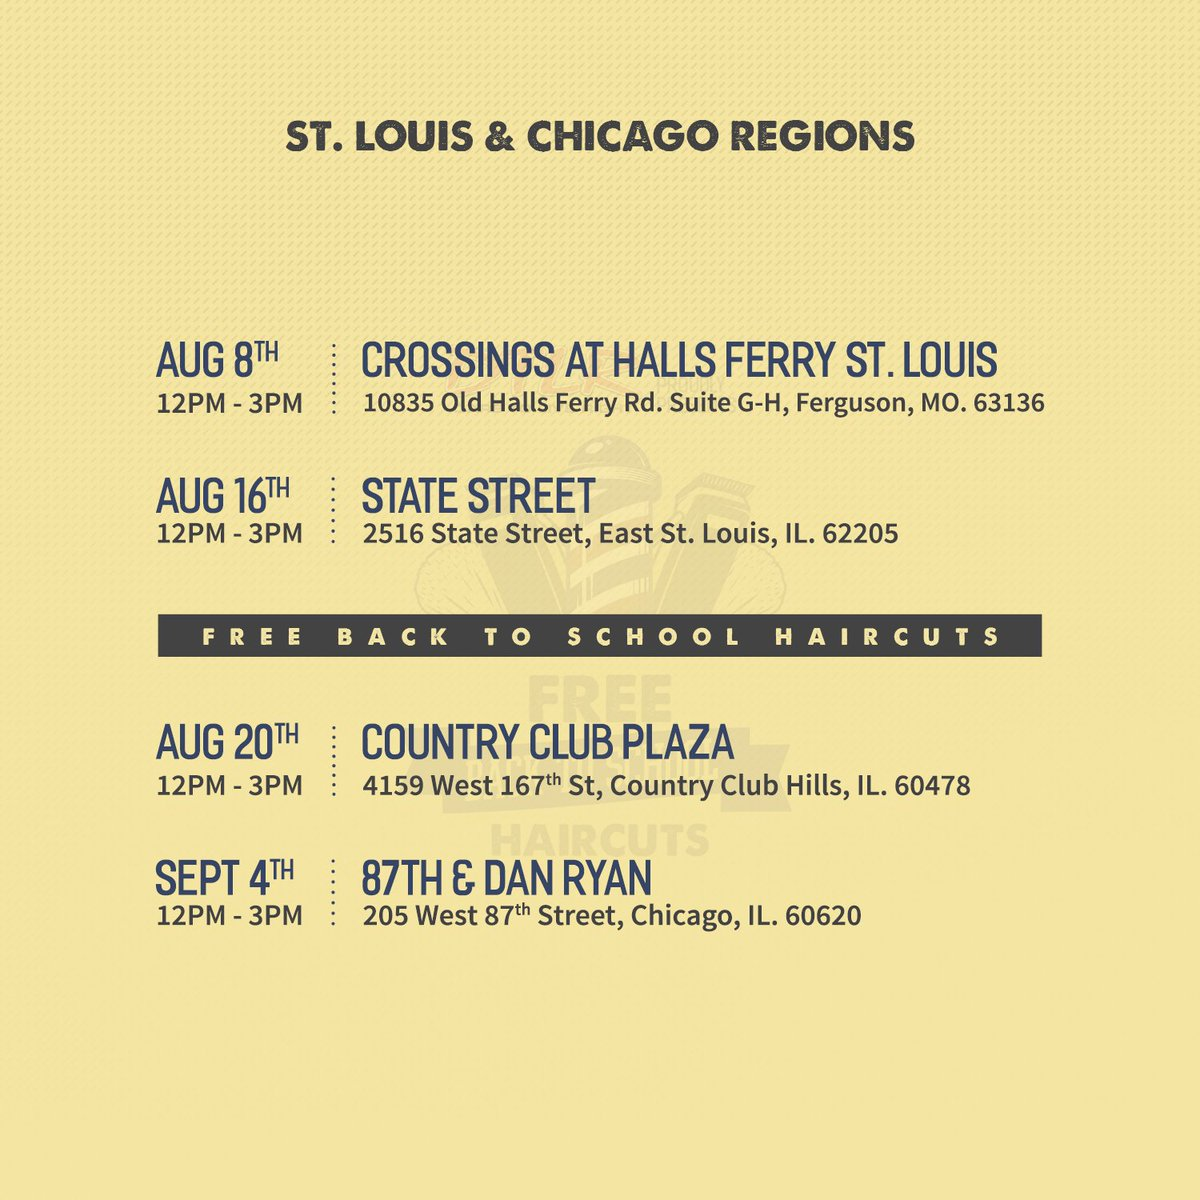 #CHI & #STLouis Bring the kids by #DTLR for a #FREE haircut | 4 Locations | 4 Dates #Daretoliveright #Back2School #Haircuts #Community #Kids https://t.co/U6G0Cl1Mp2